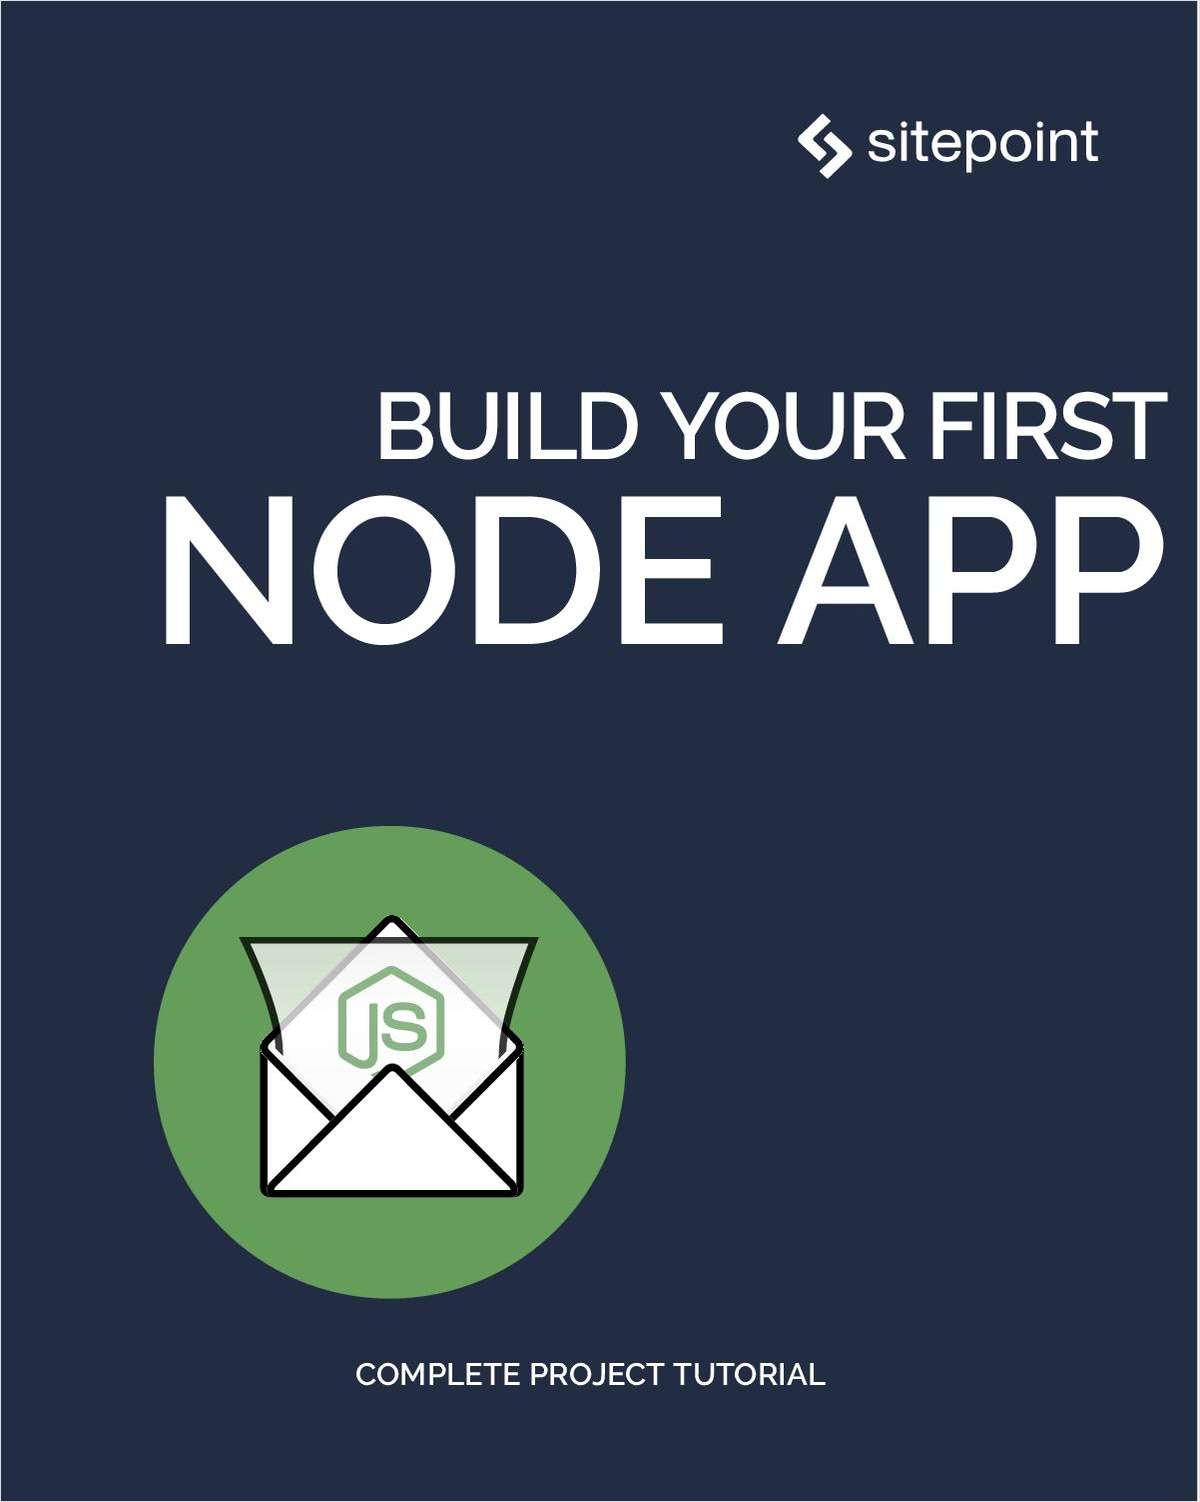 Build Your First Node App